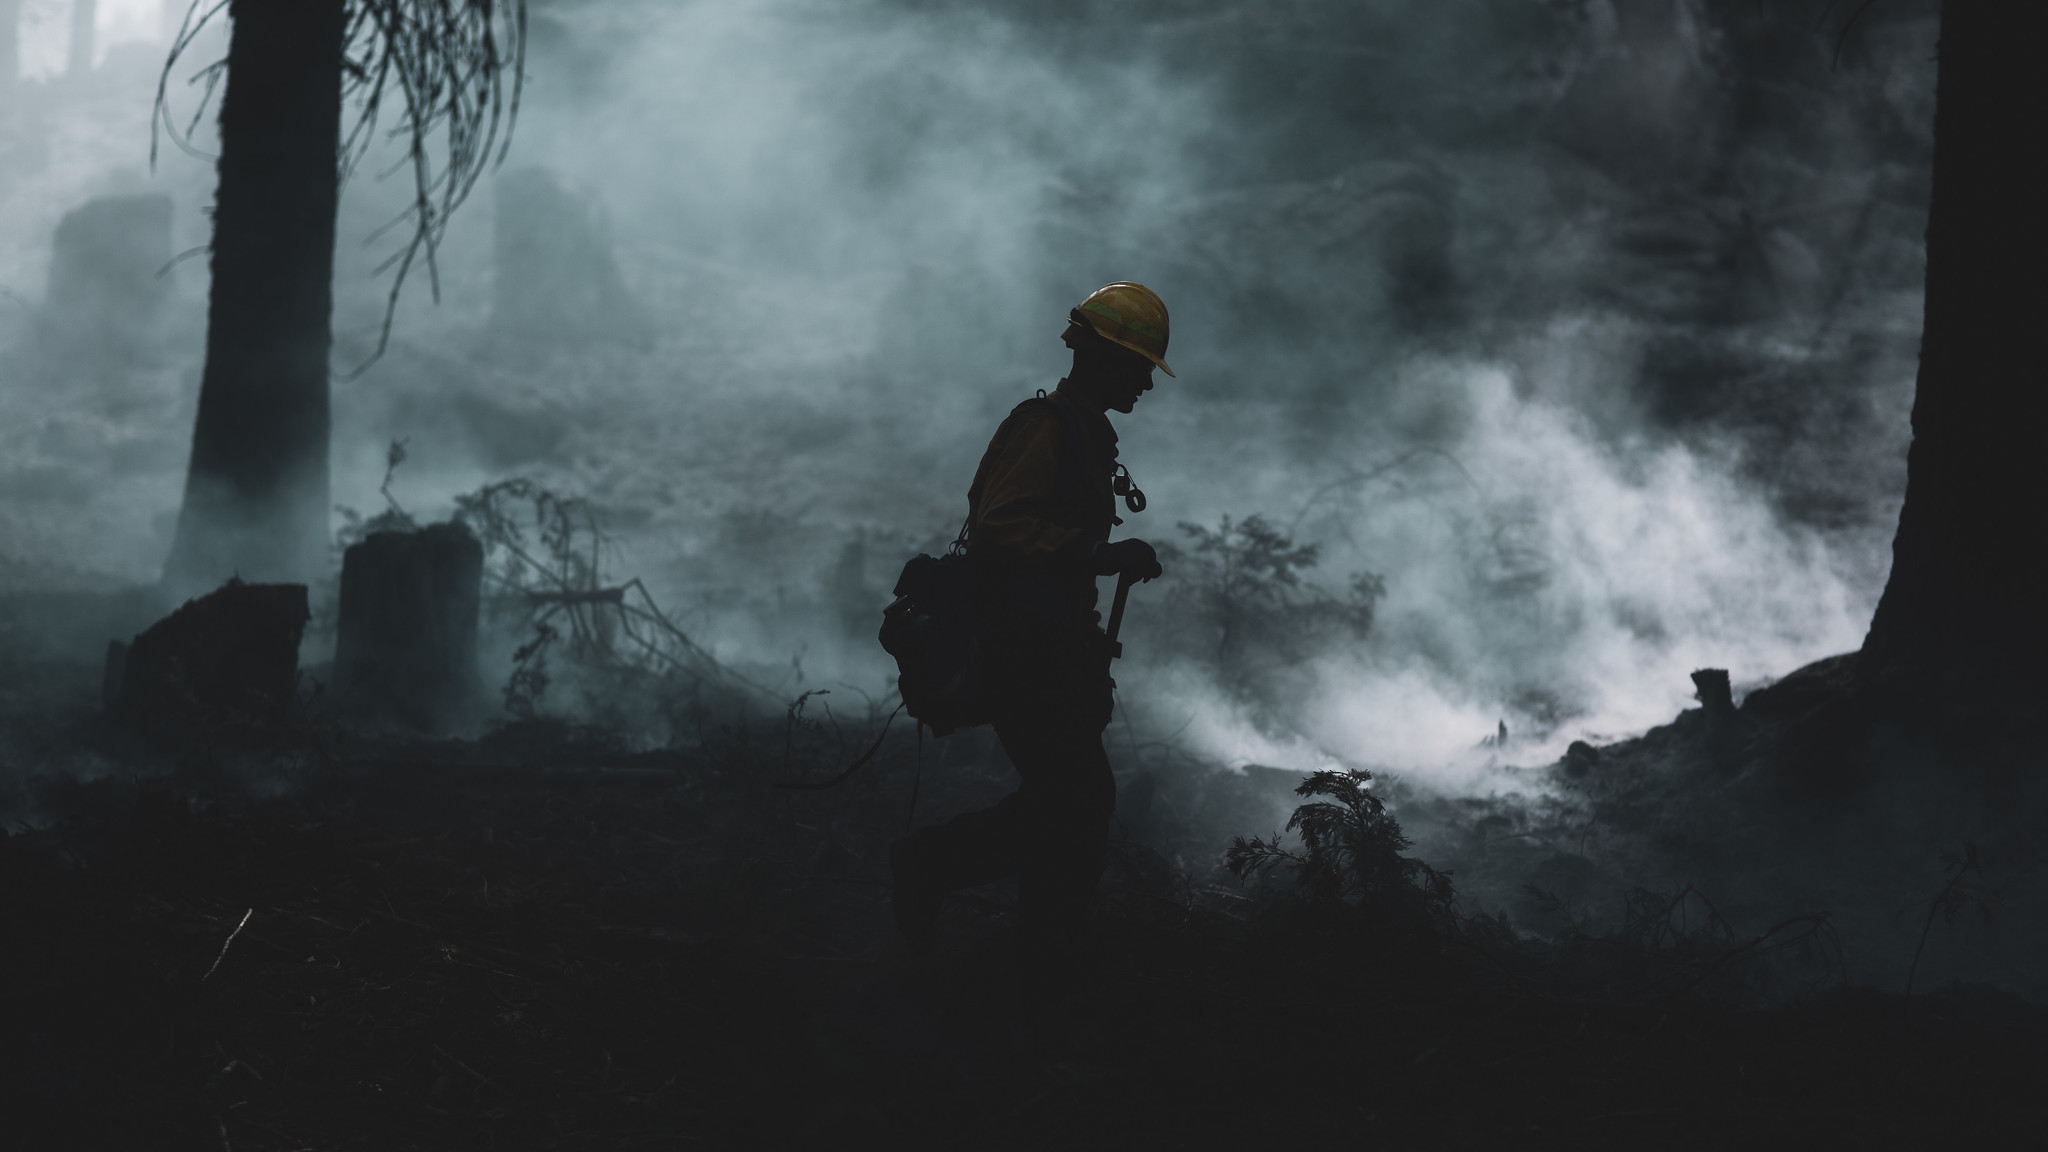 A U.S. Marine assigned to the 7th Engineer Support Battalion, 1st Marine Logistics Group, conducts wildland firefighting operations in O'Neals, Calif., near the Sierra National Forest, Sept. 26, 2020. Approximately 250 Marines from 7th ESB are going to help fight the Creek Fire in central California. (Warrant Officer Eric LaClair/Marine Corps)